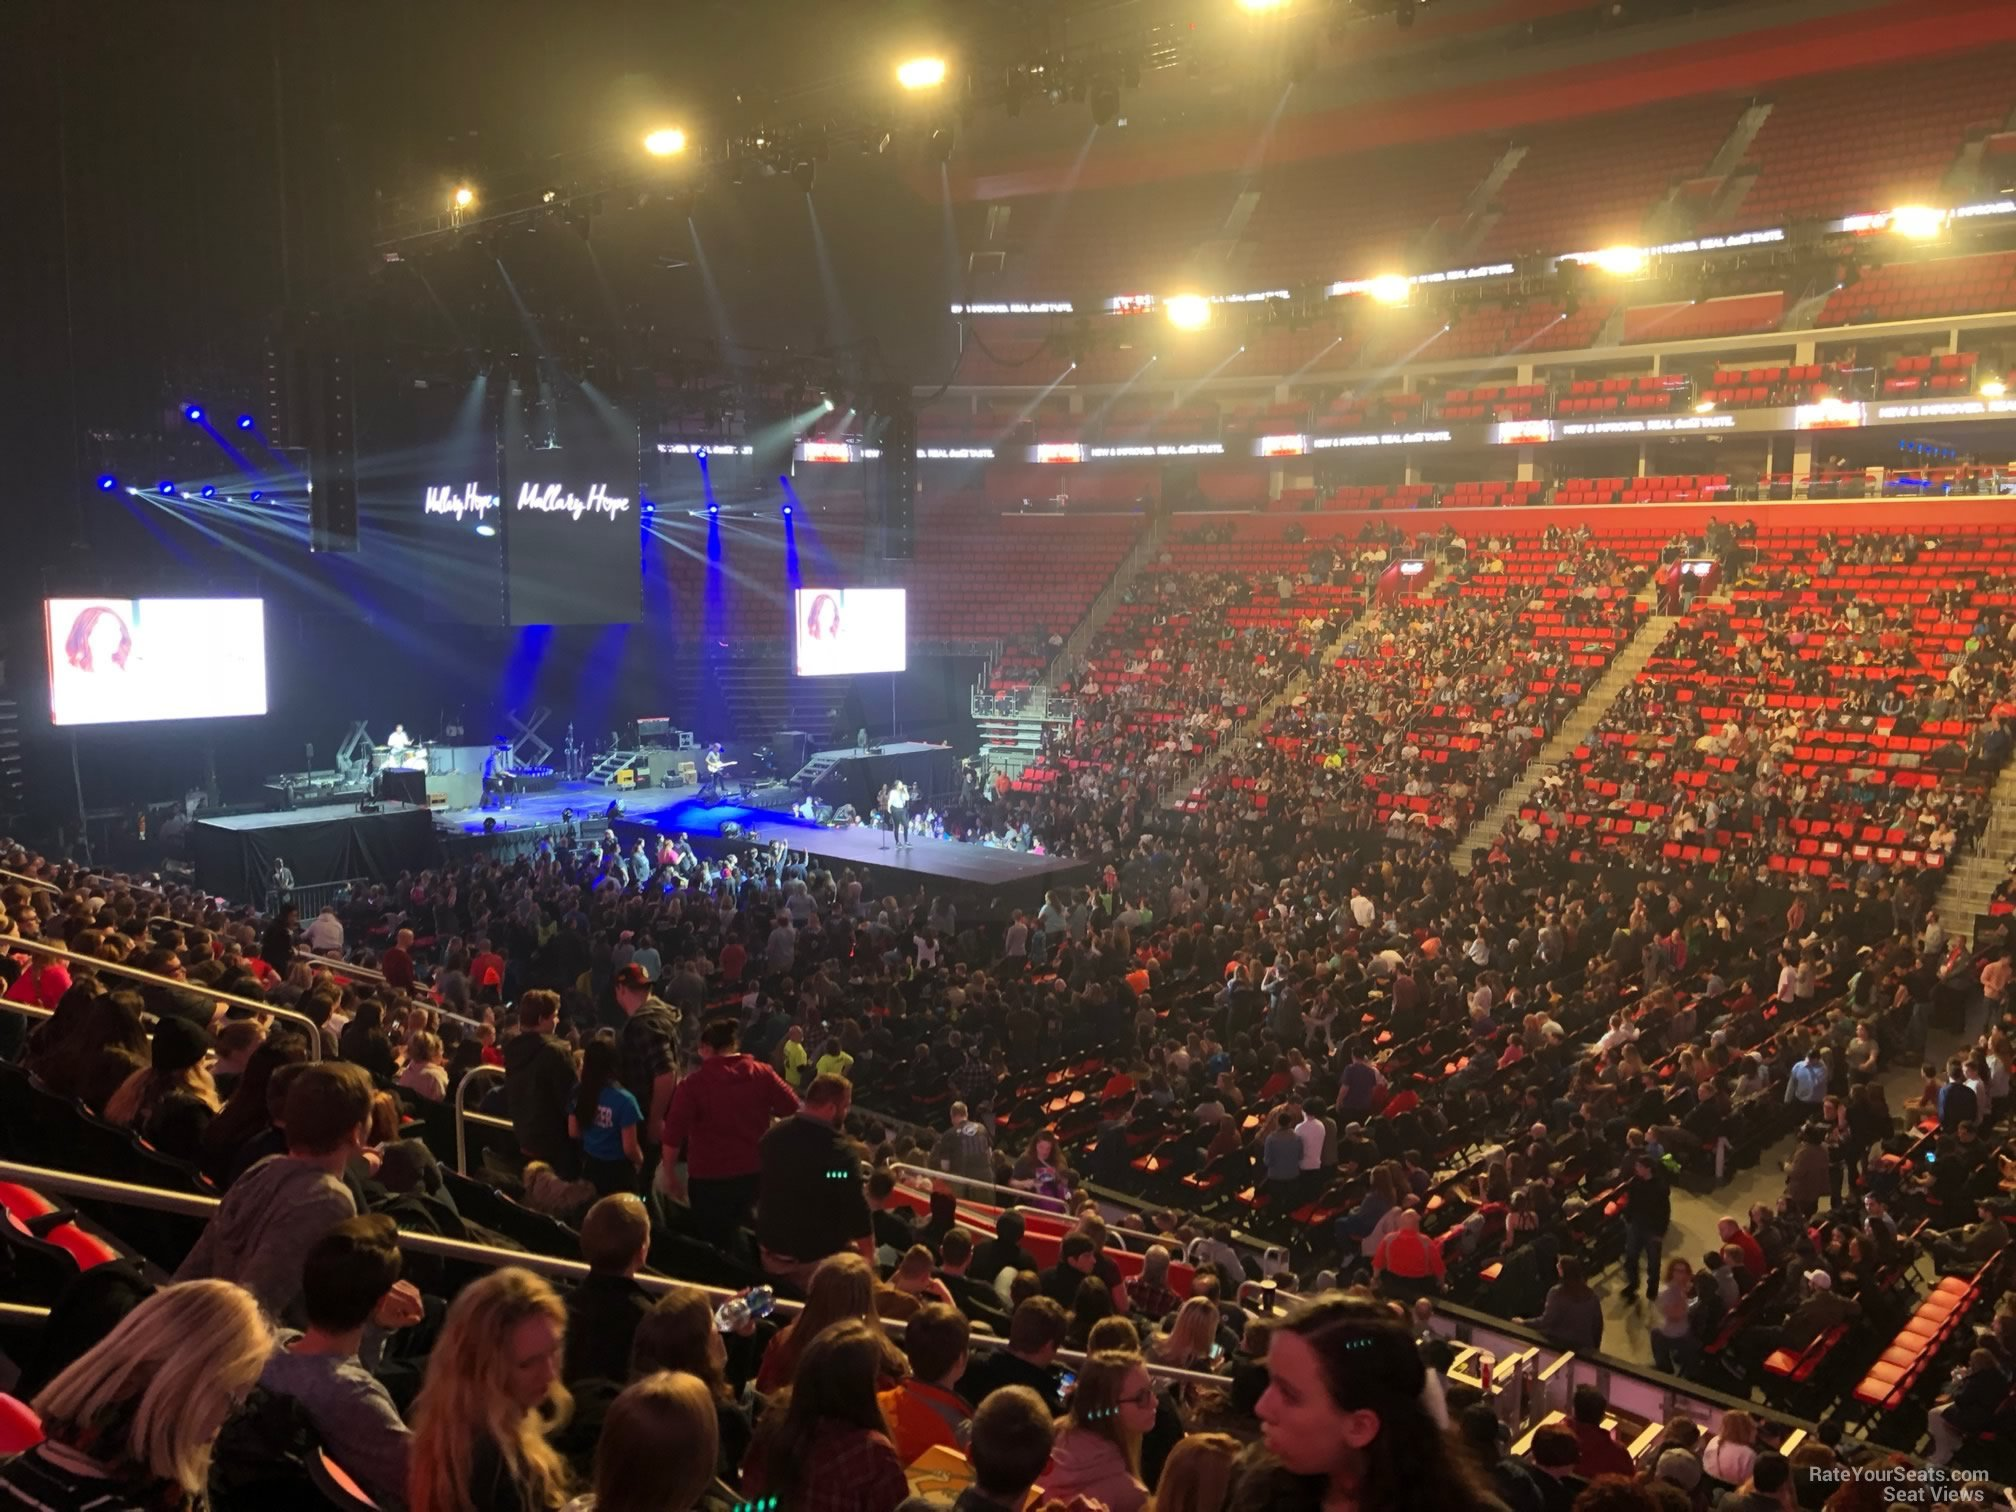 Little Caesars Arena Section 120 Concert Seating - RateYourSeats.com